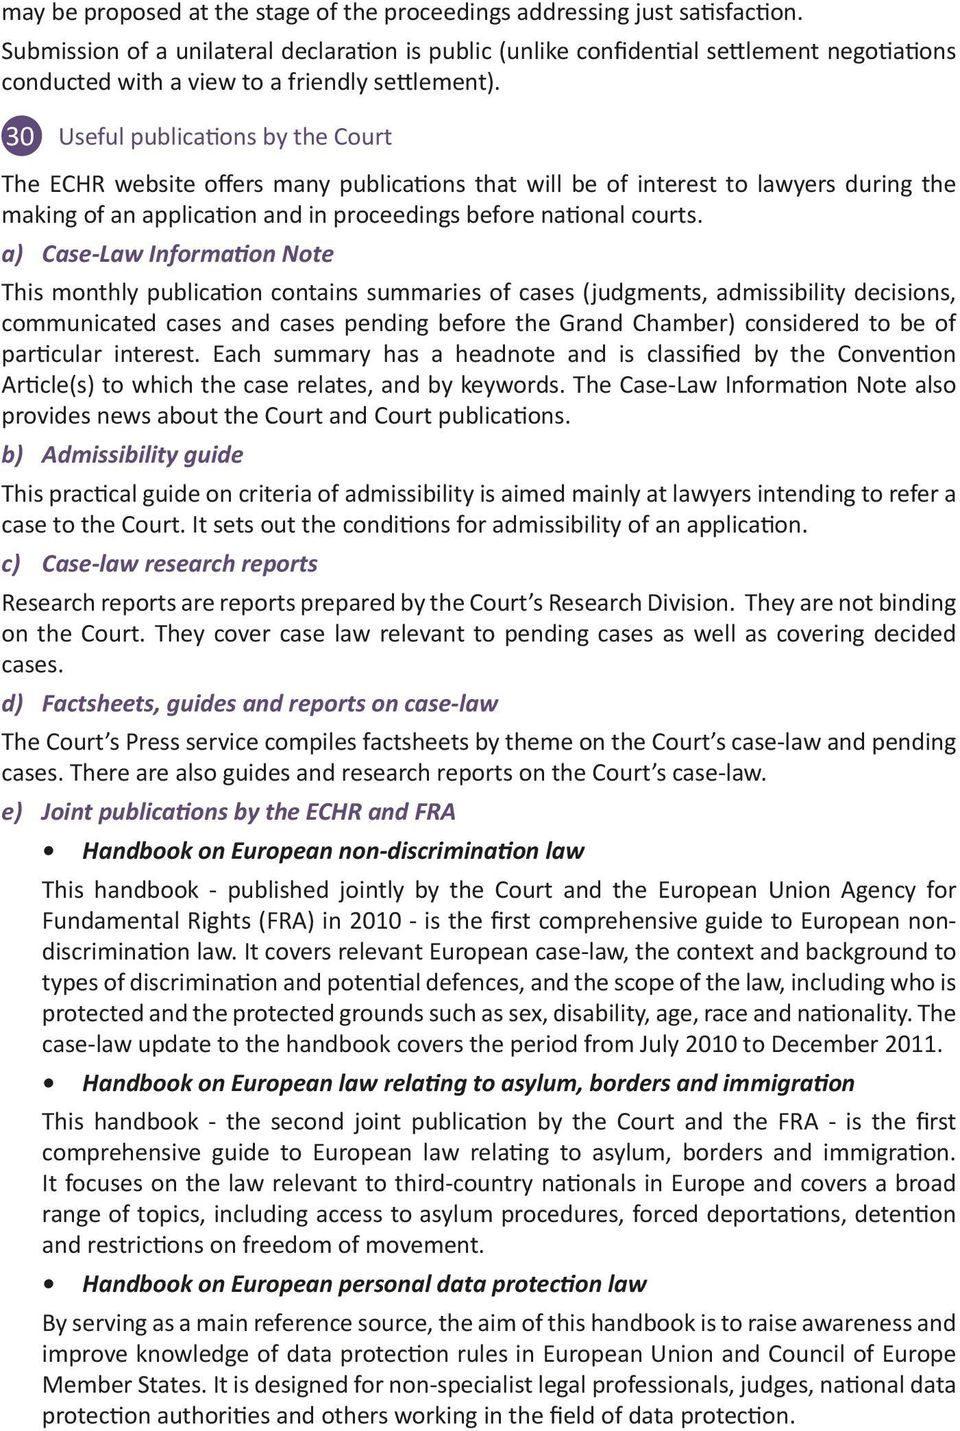 30 Useful publications by the Court The ECHR website offers many publications that will be of interest to lawyers during the making of an application and in proceedings before national courts.